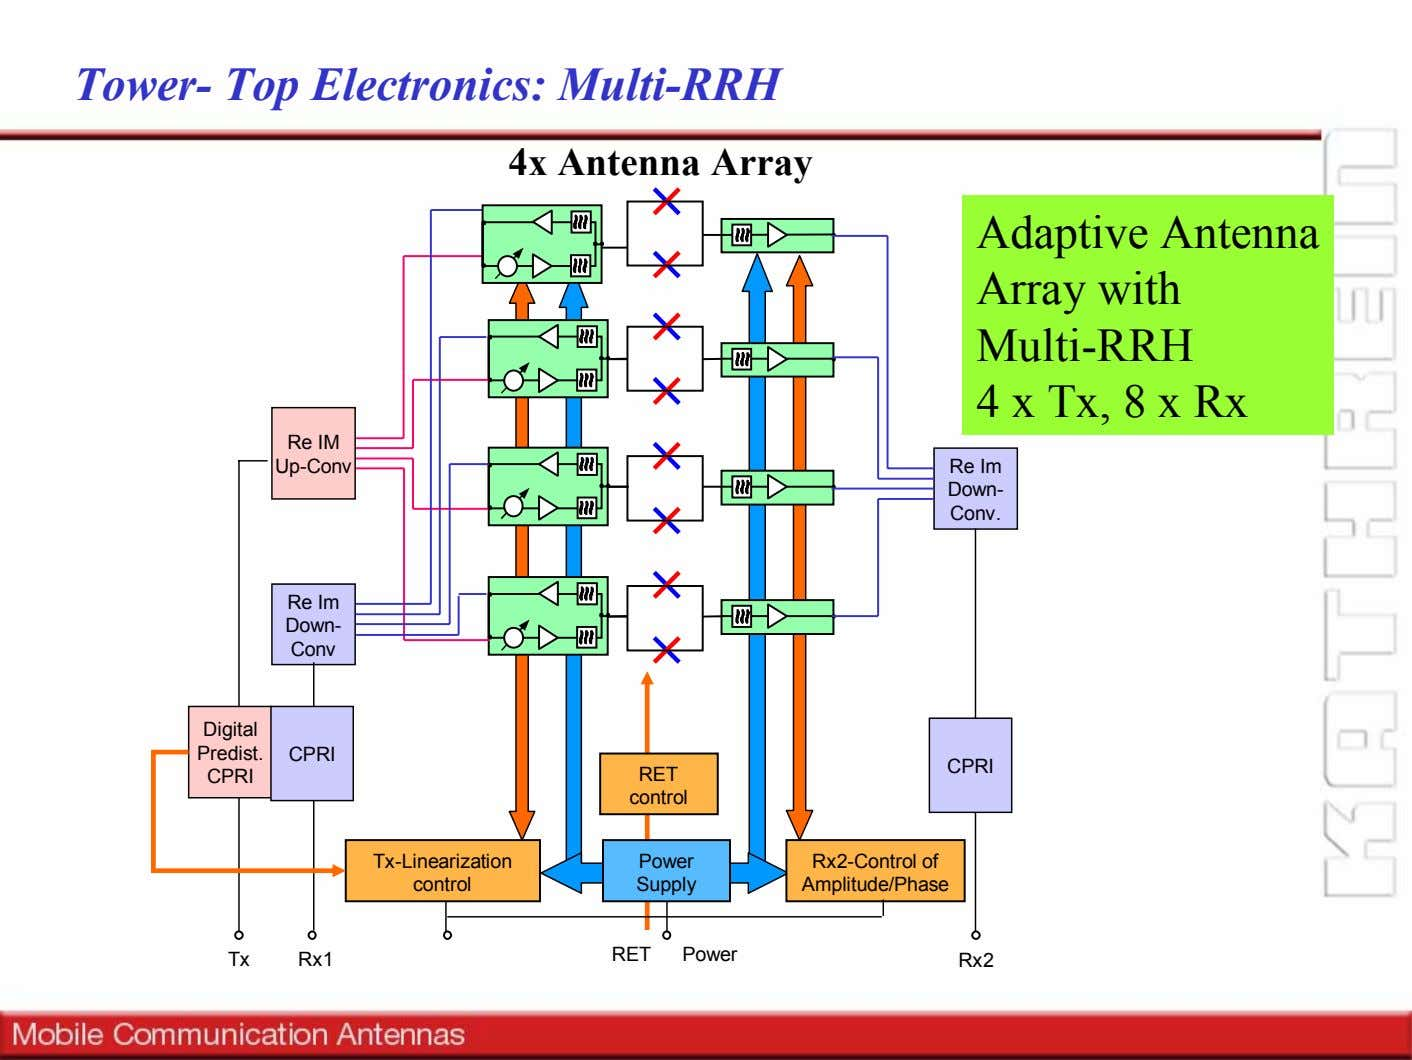 Tower- Top Electronics: Multi-RRH 4x Antenna Array Adaptive Antenna Array with Multi-RRH 4 x Tx,